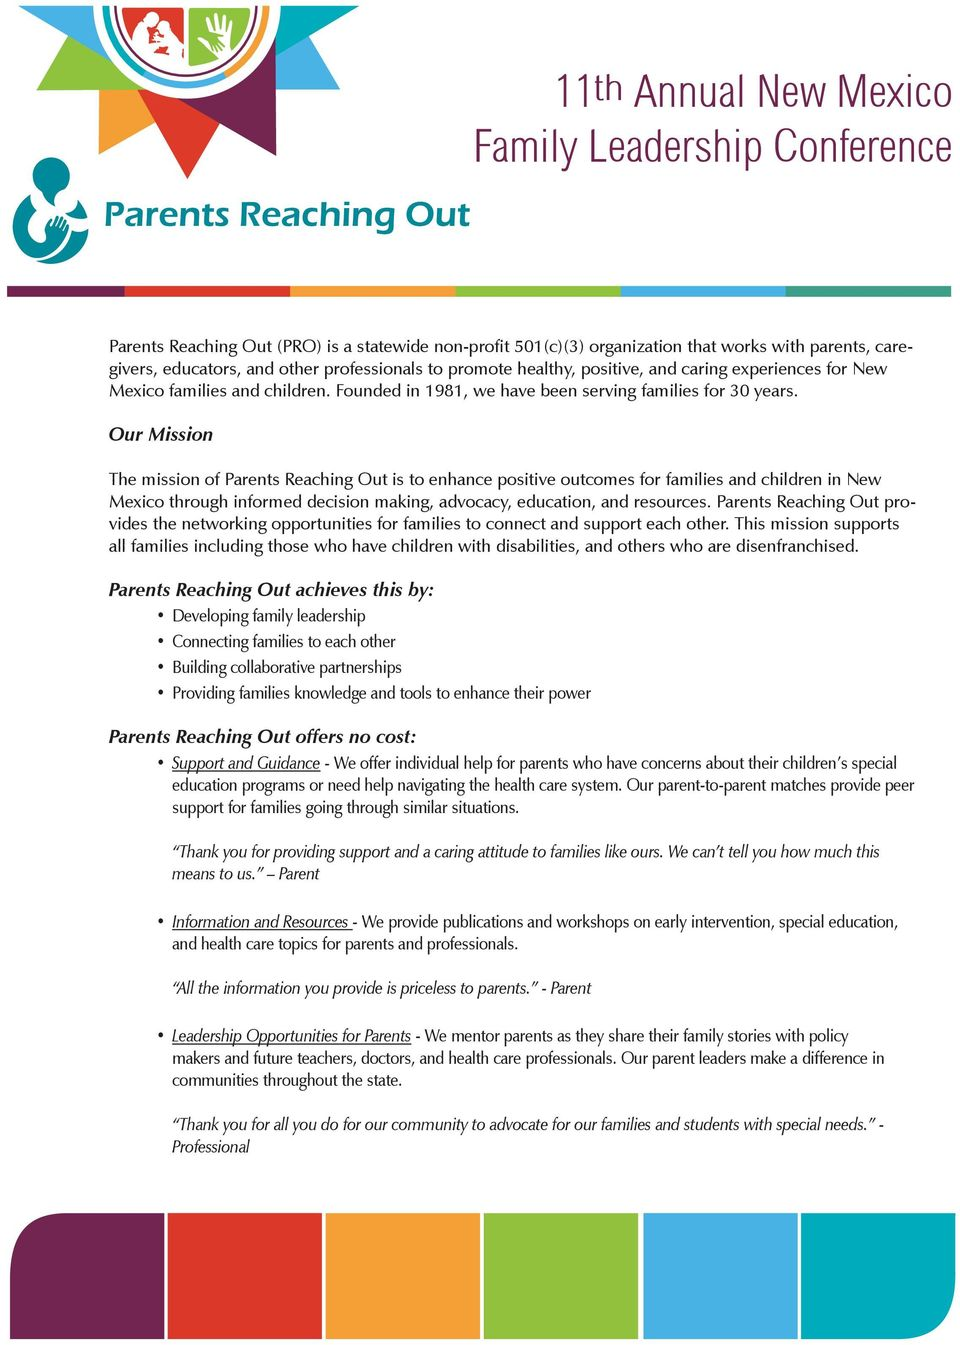 Our Mission The mission of Parents Reaching Out is to enhance positive outcomes for families and children in New Mexico through informed decision making, advocacy, education, and resources.